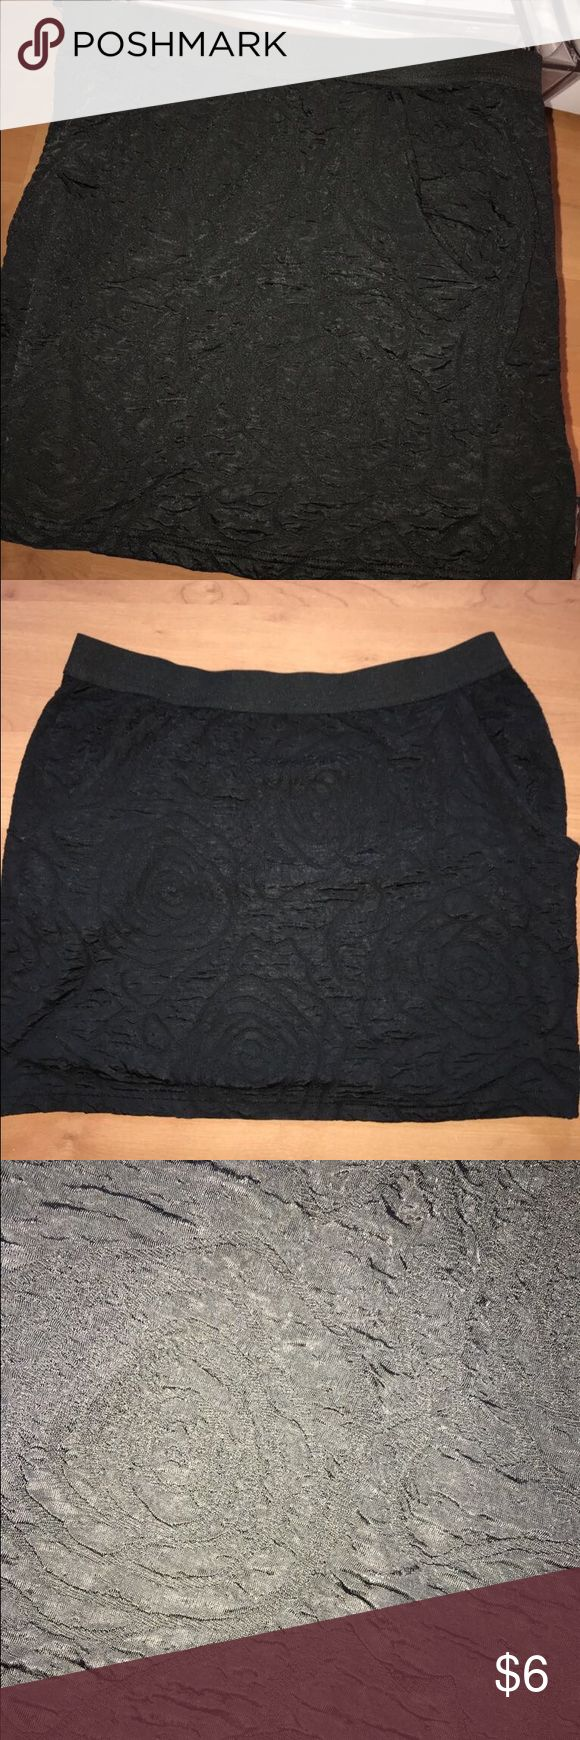 Little black skirt Pre loved. Cute tulip skirt with pockets on the sides. Has been worn Urban Outfitters Skirts Mini